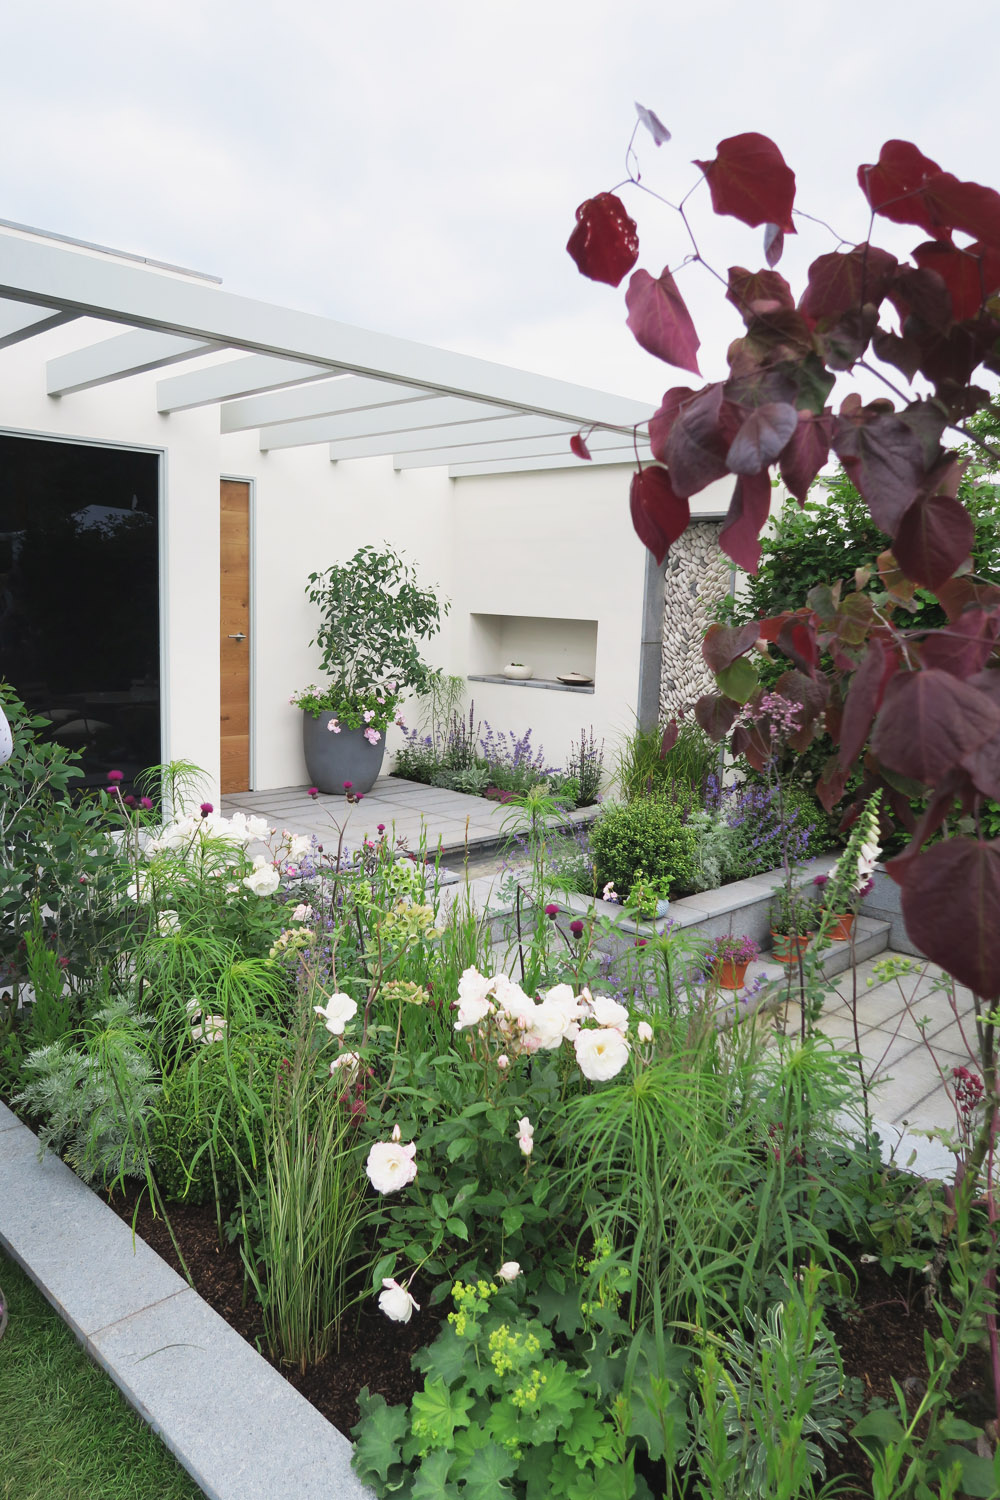 Gardeners World Live 2016 Show Gardens - An Urban Retreat